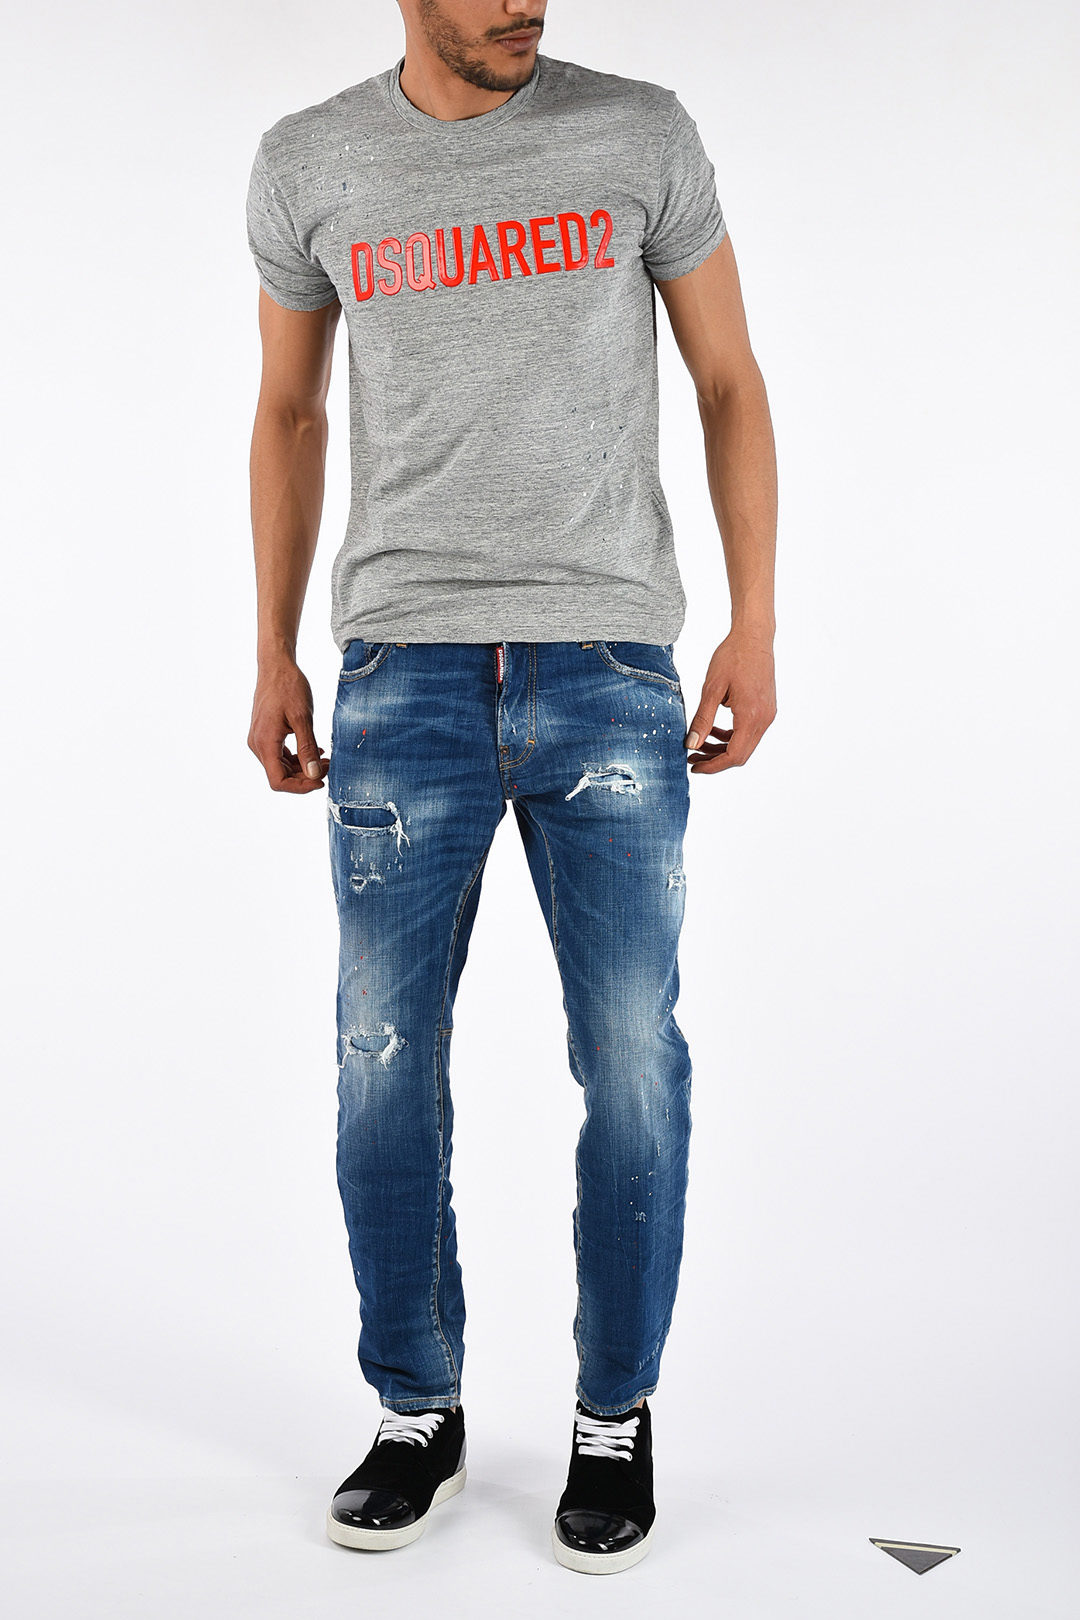 546ee195dc4 Dsquared2 Round Neck T-shirt men - Glamood Outlet